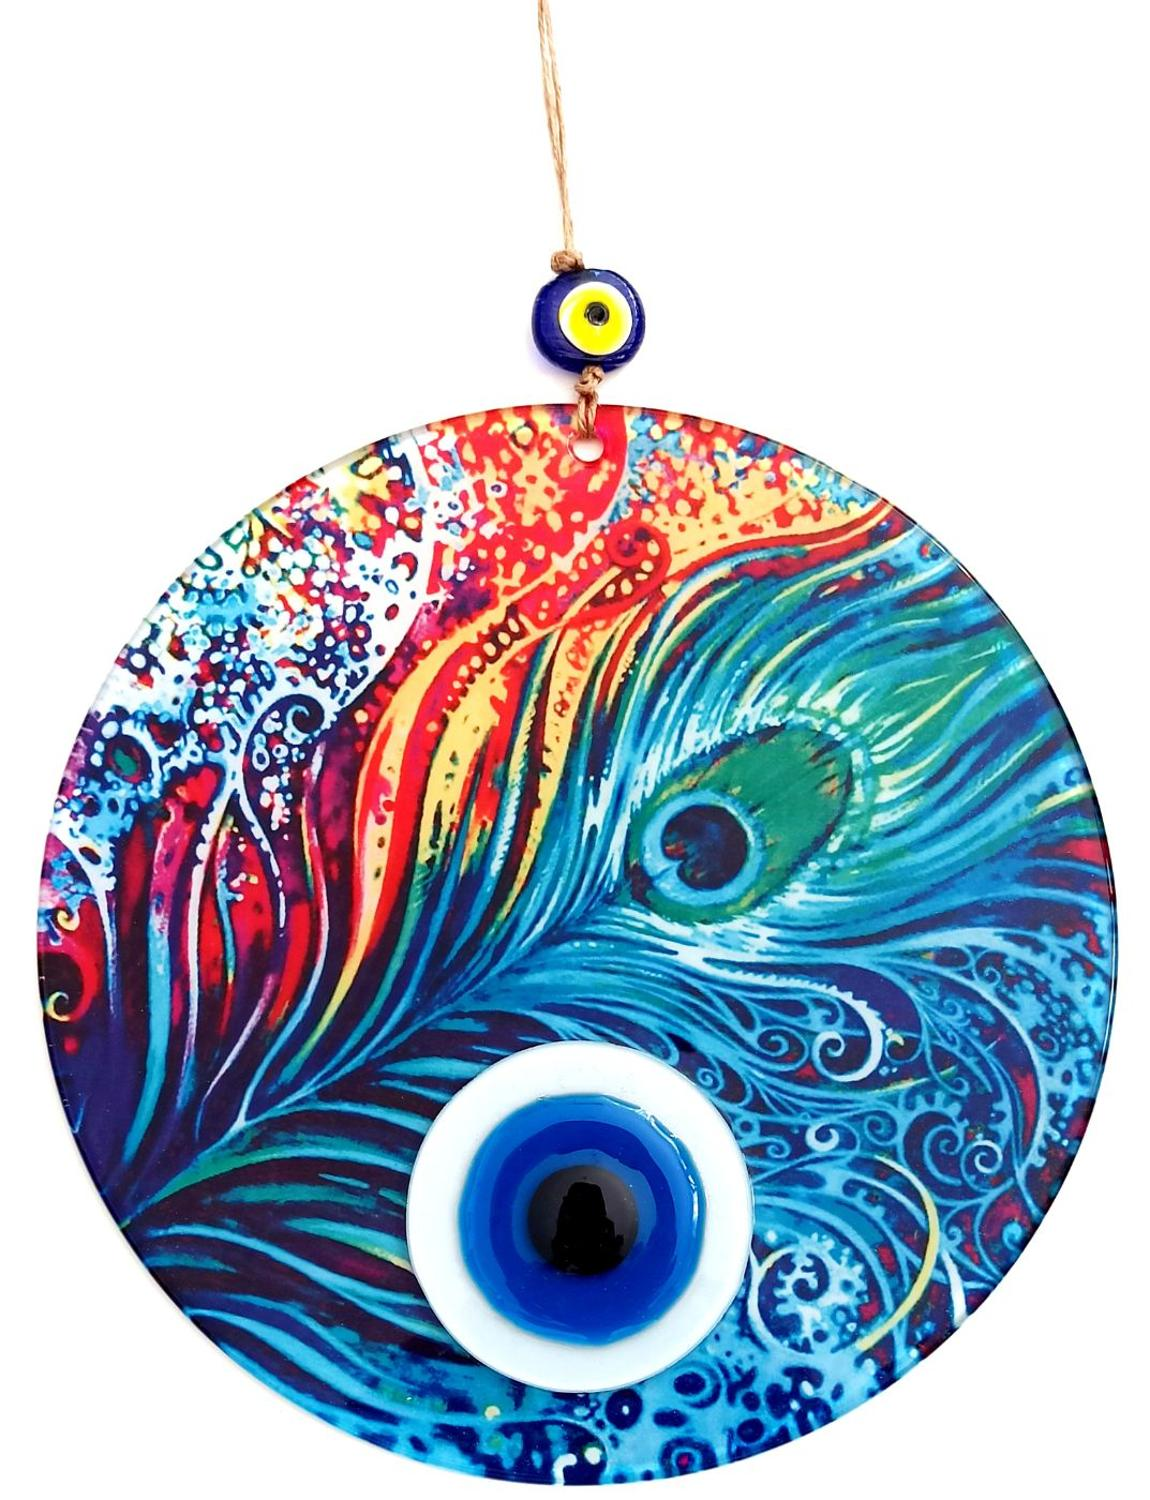 Feather Pattern, 23 Centimeter, Fusion Glass, Handmade Evil Eye Bead Wall Decoration